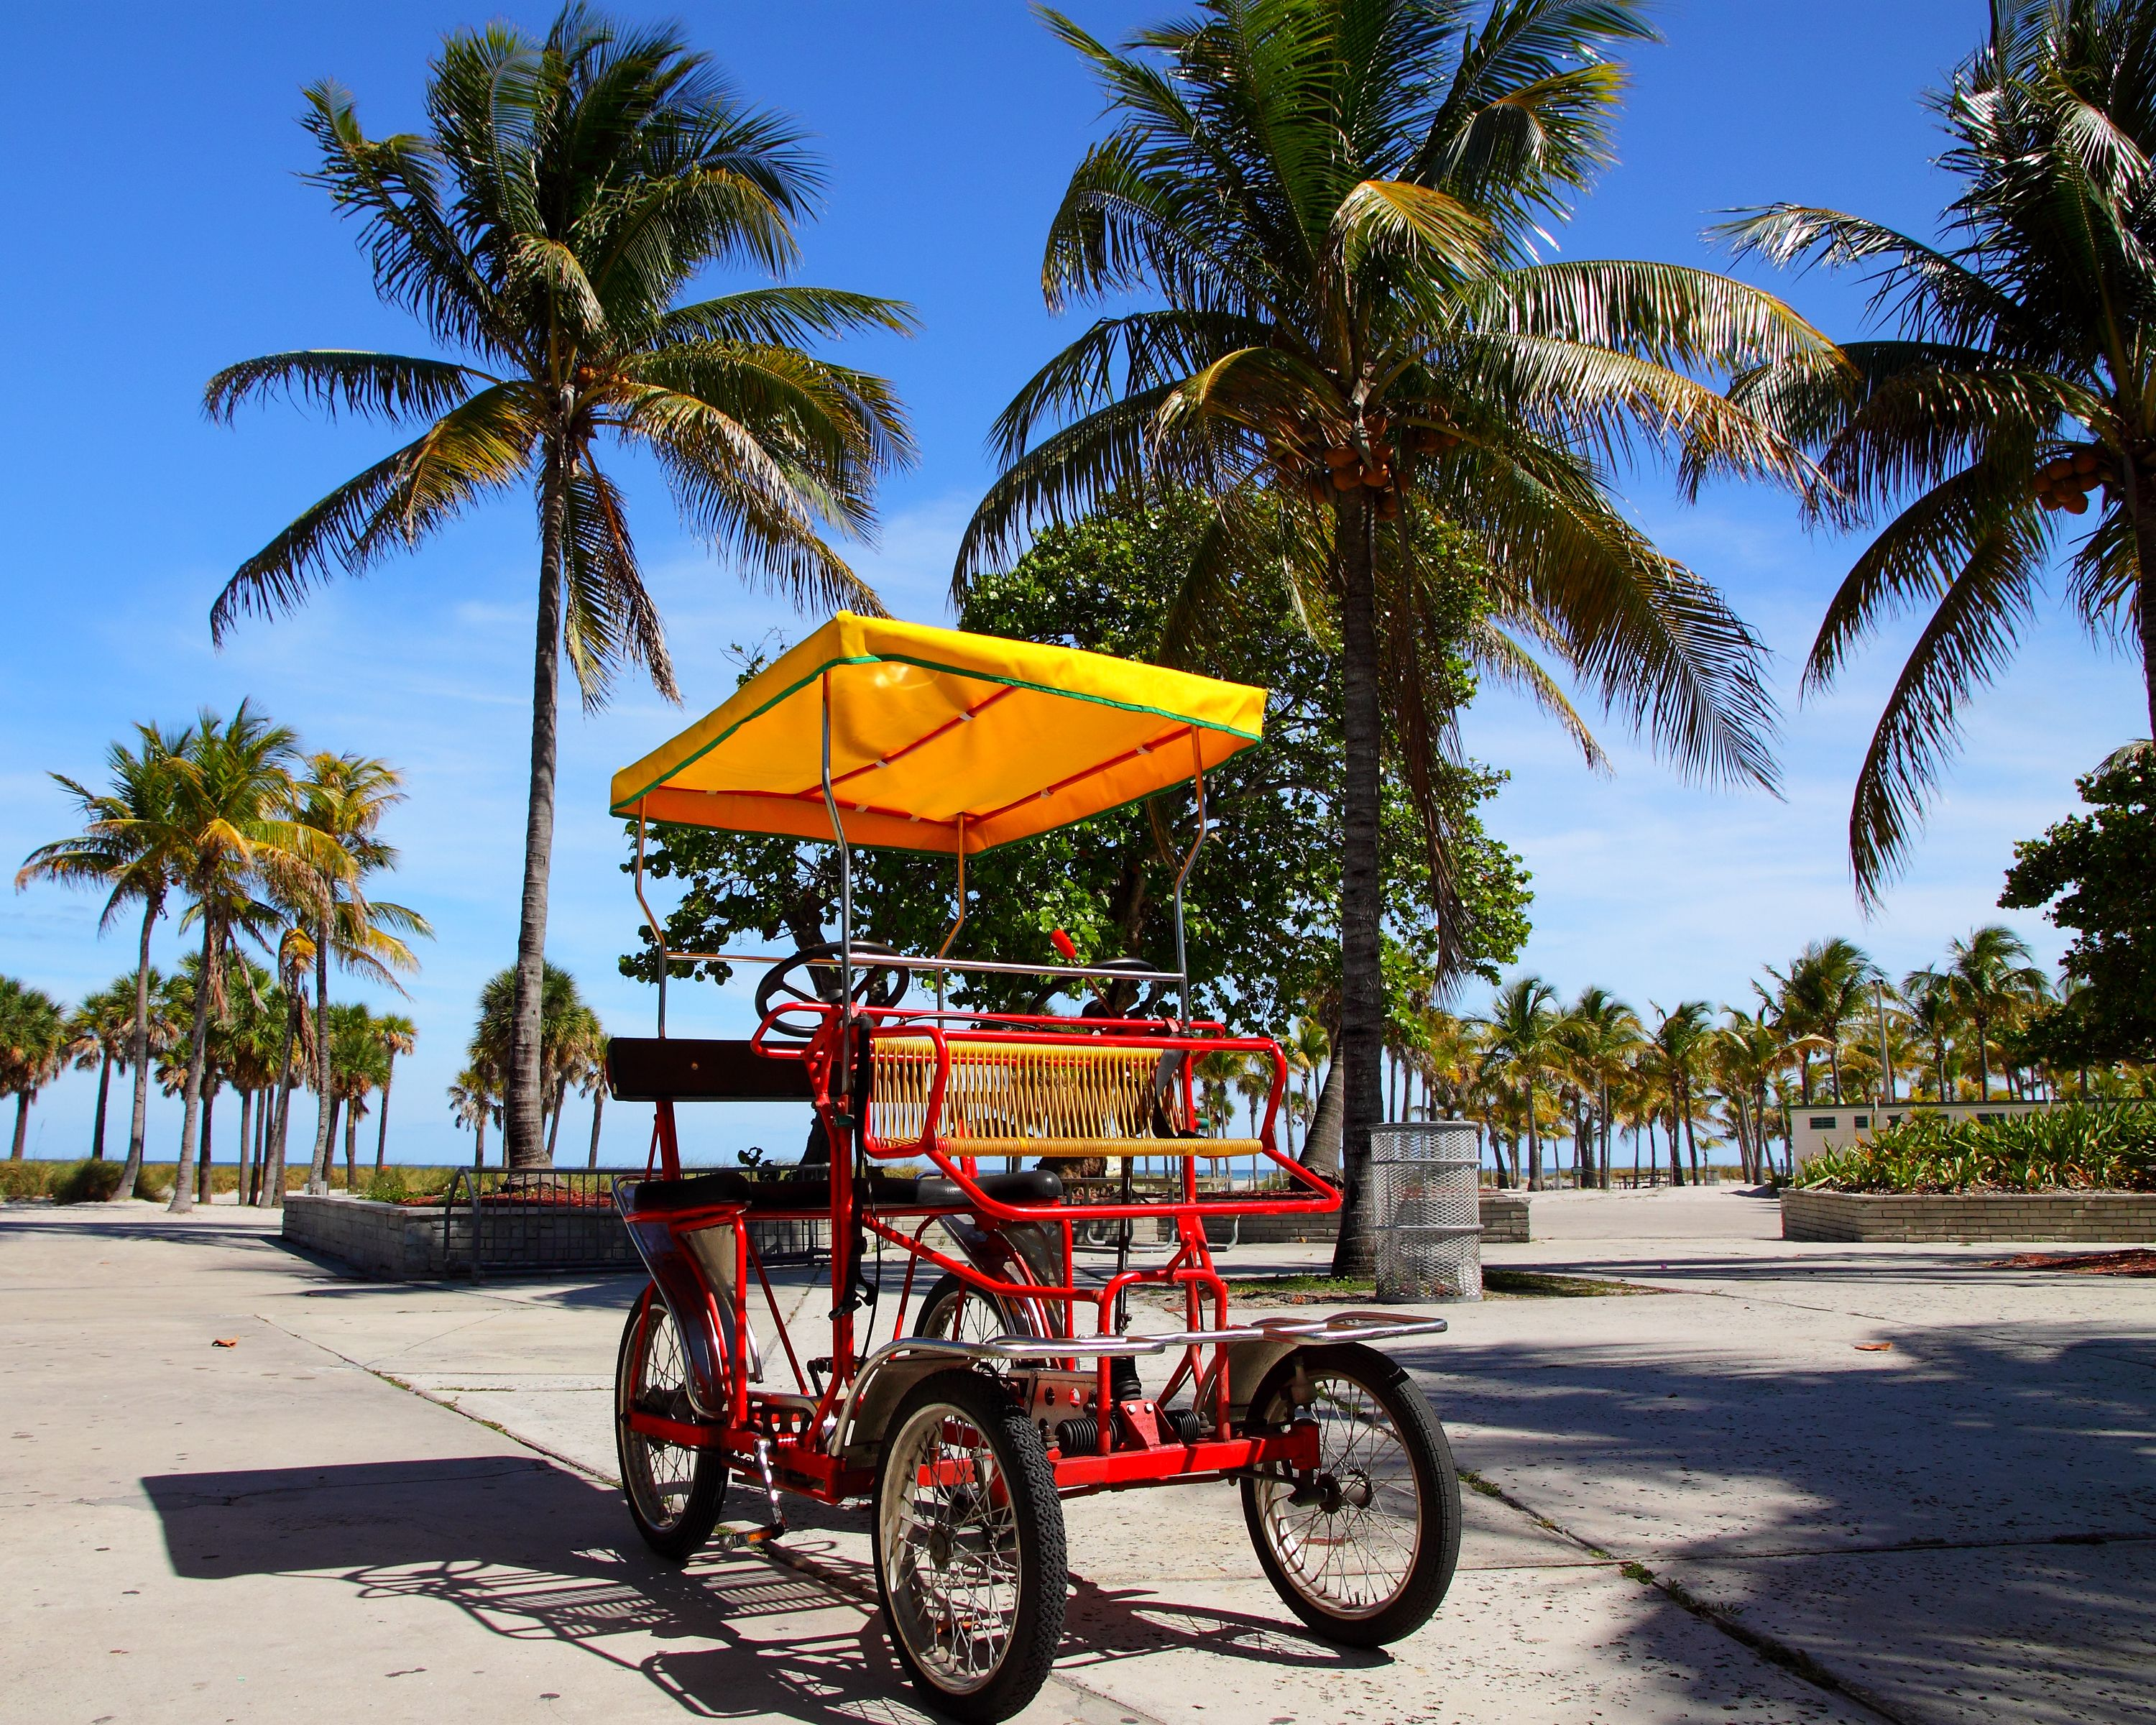 Rent A Bike At Crandon Park In Key Biscayne And Enjoy The Whole